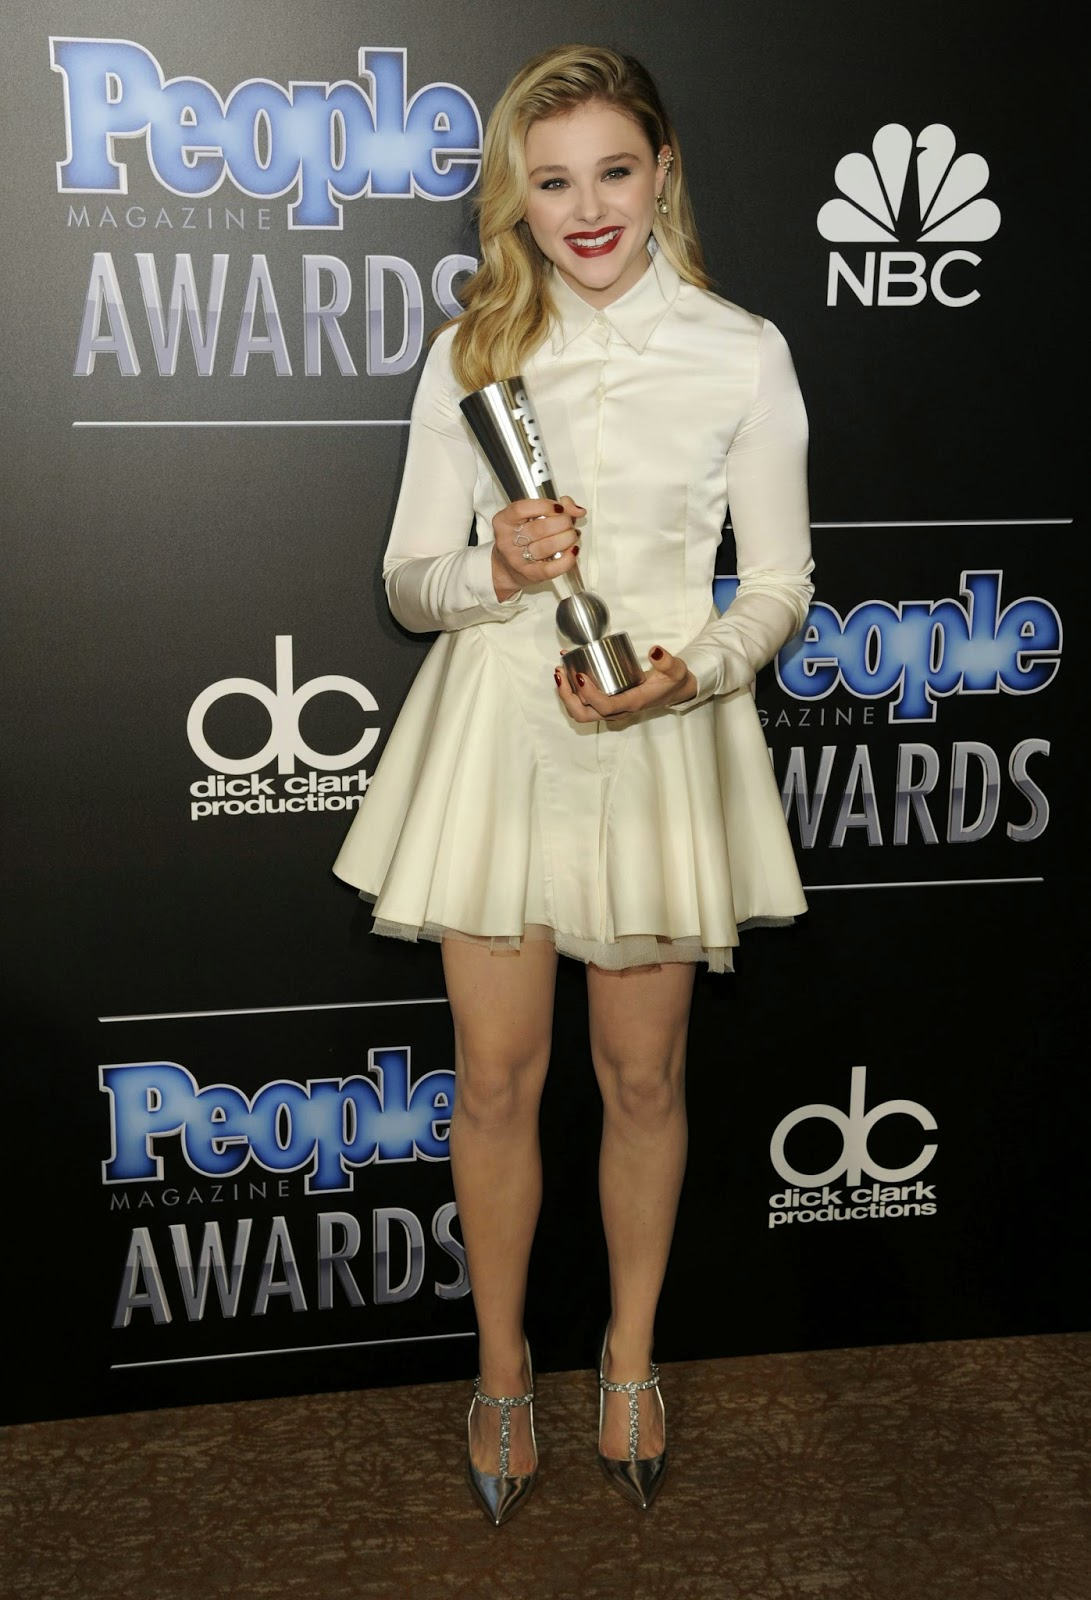 Chloe Moretz looks stunning in a Dior dress at the 2014 People Magazine Awards